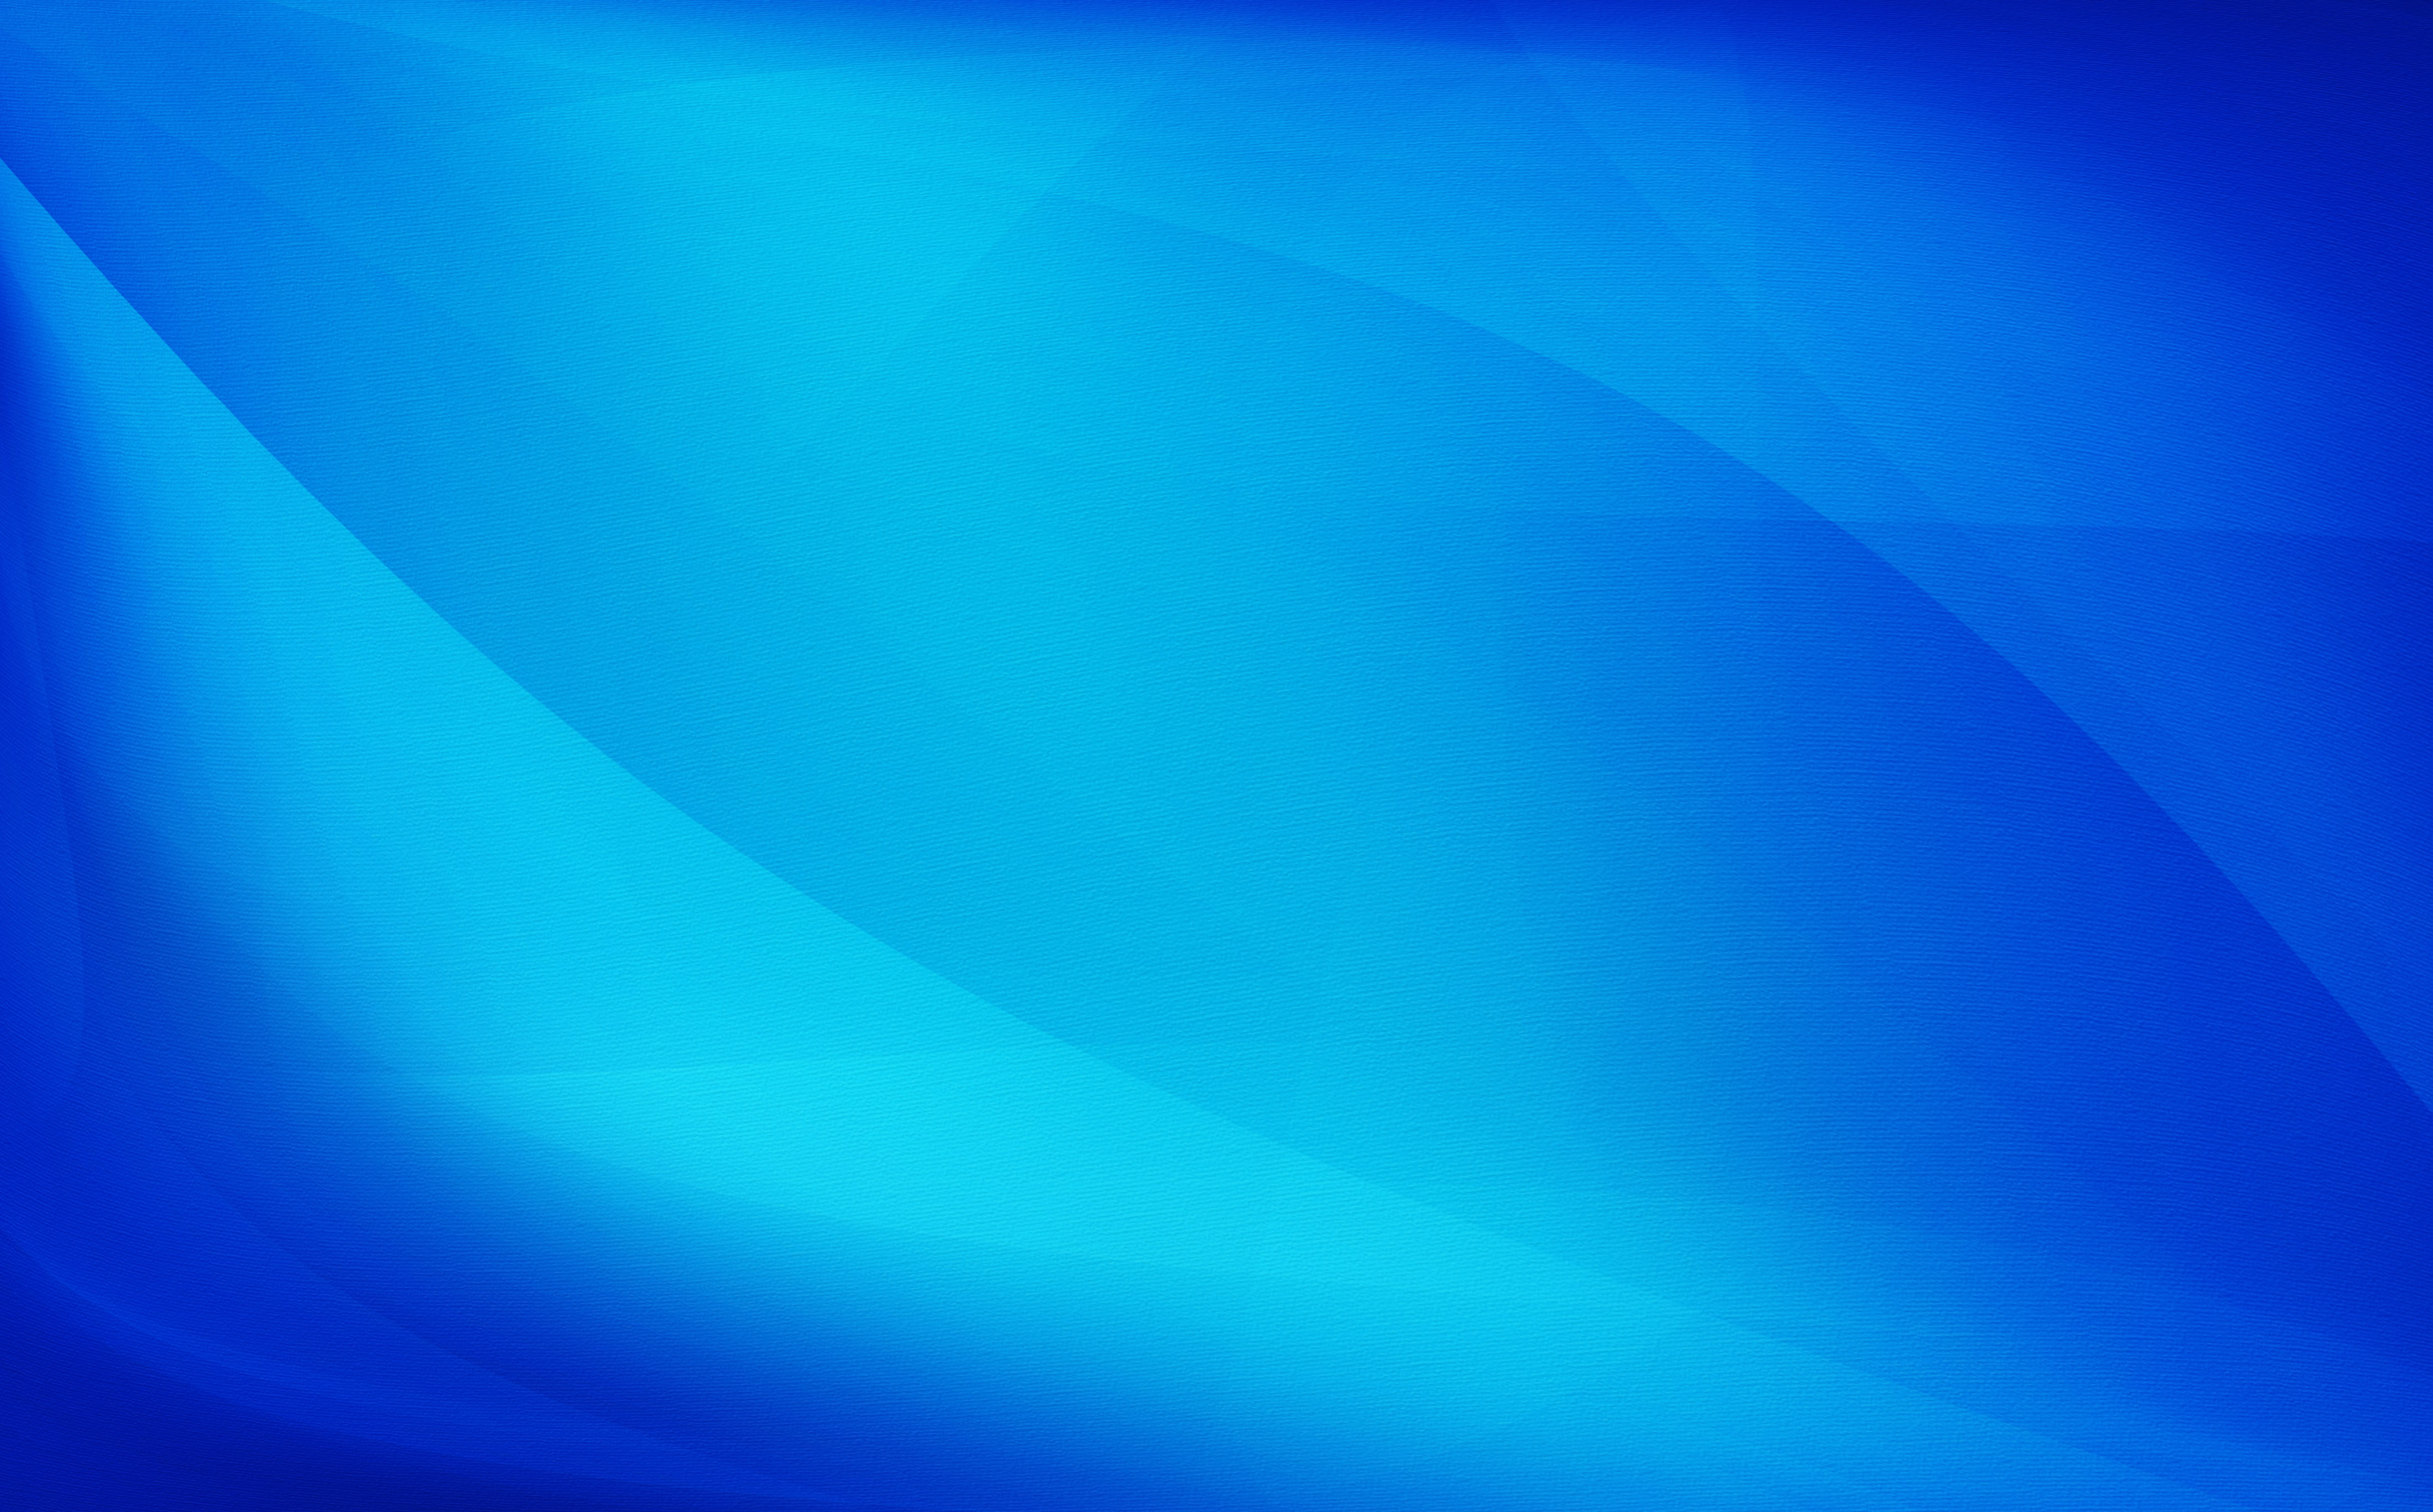 Hd Christmas Wallpapers 1080p Illustration Of A Flowing Blue Abstract Texture Background